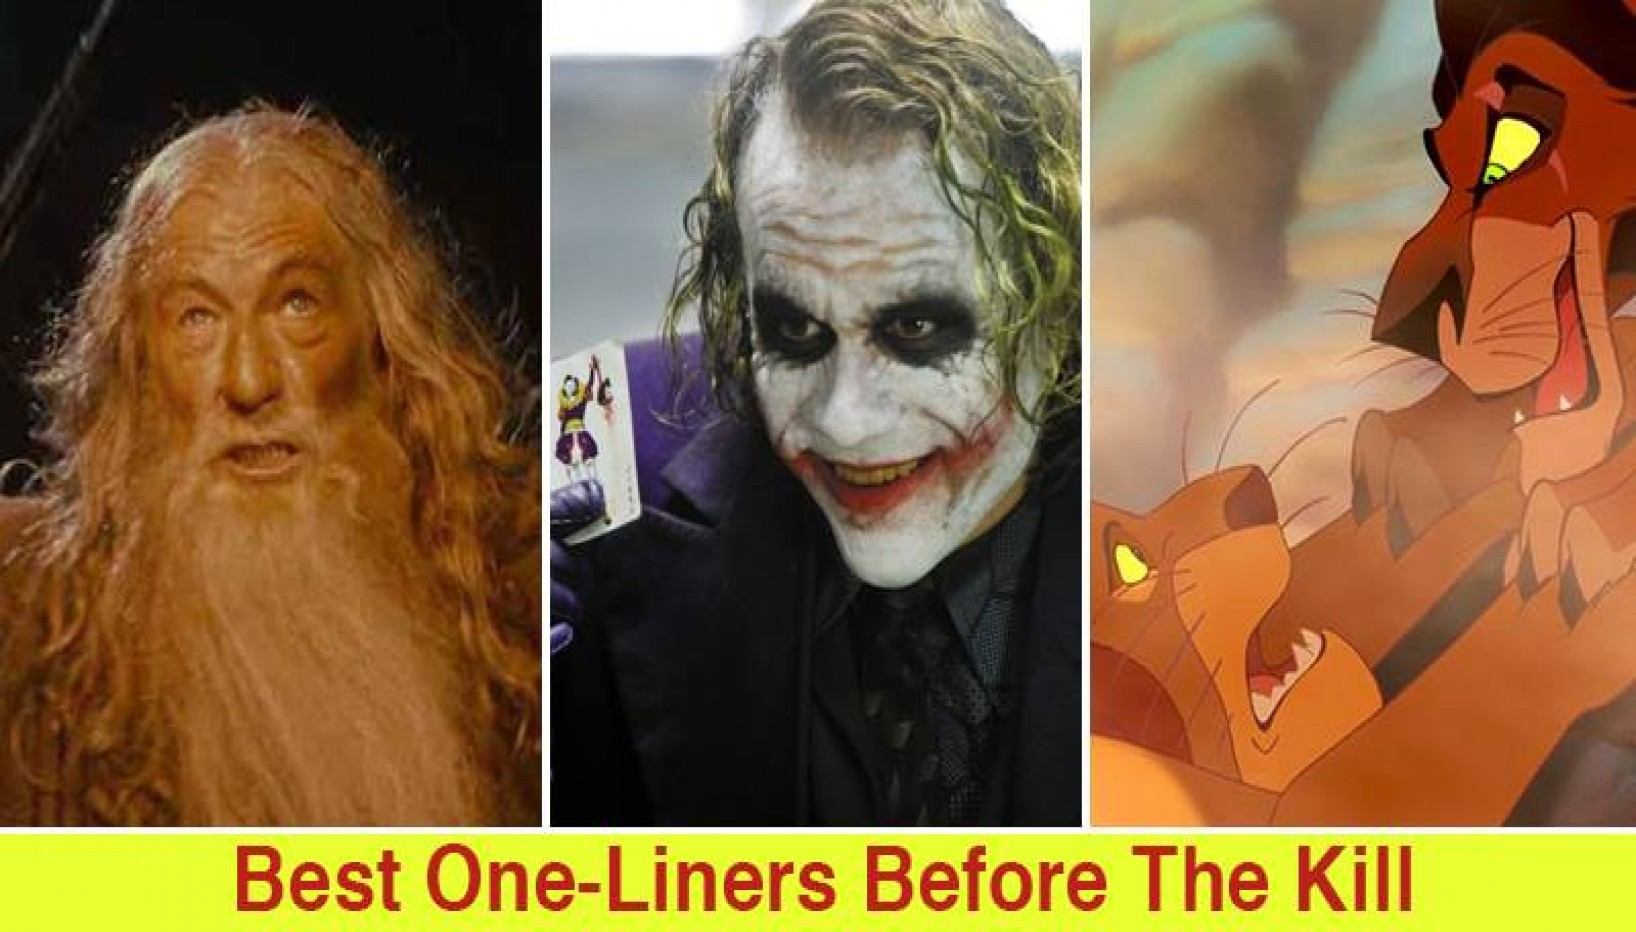 Here Are 20 Of The Best One-Liners Before The Kill